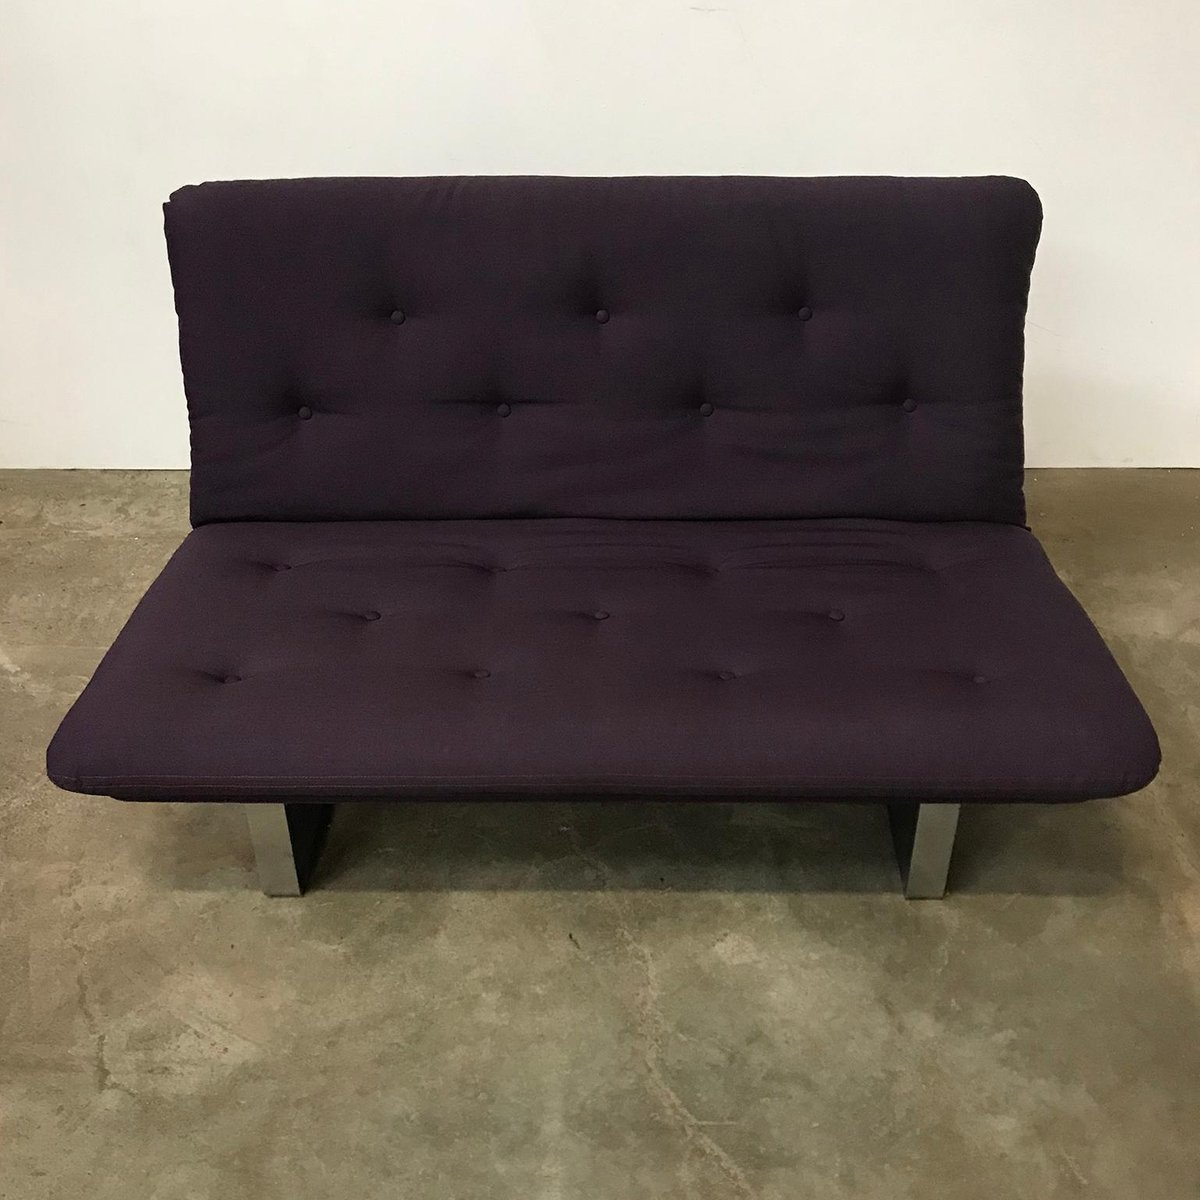 Purple Chrome Two Seater Sofa By Kho Liang Ie Wim Crouwel For Artifort 1968 For Sale At Pamono